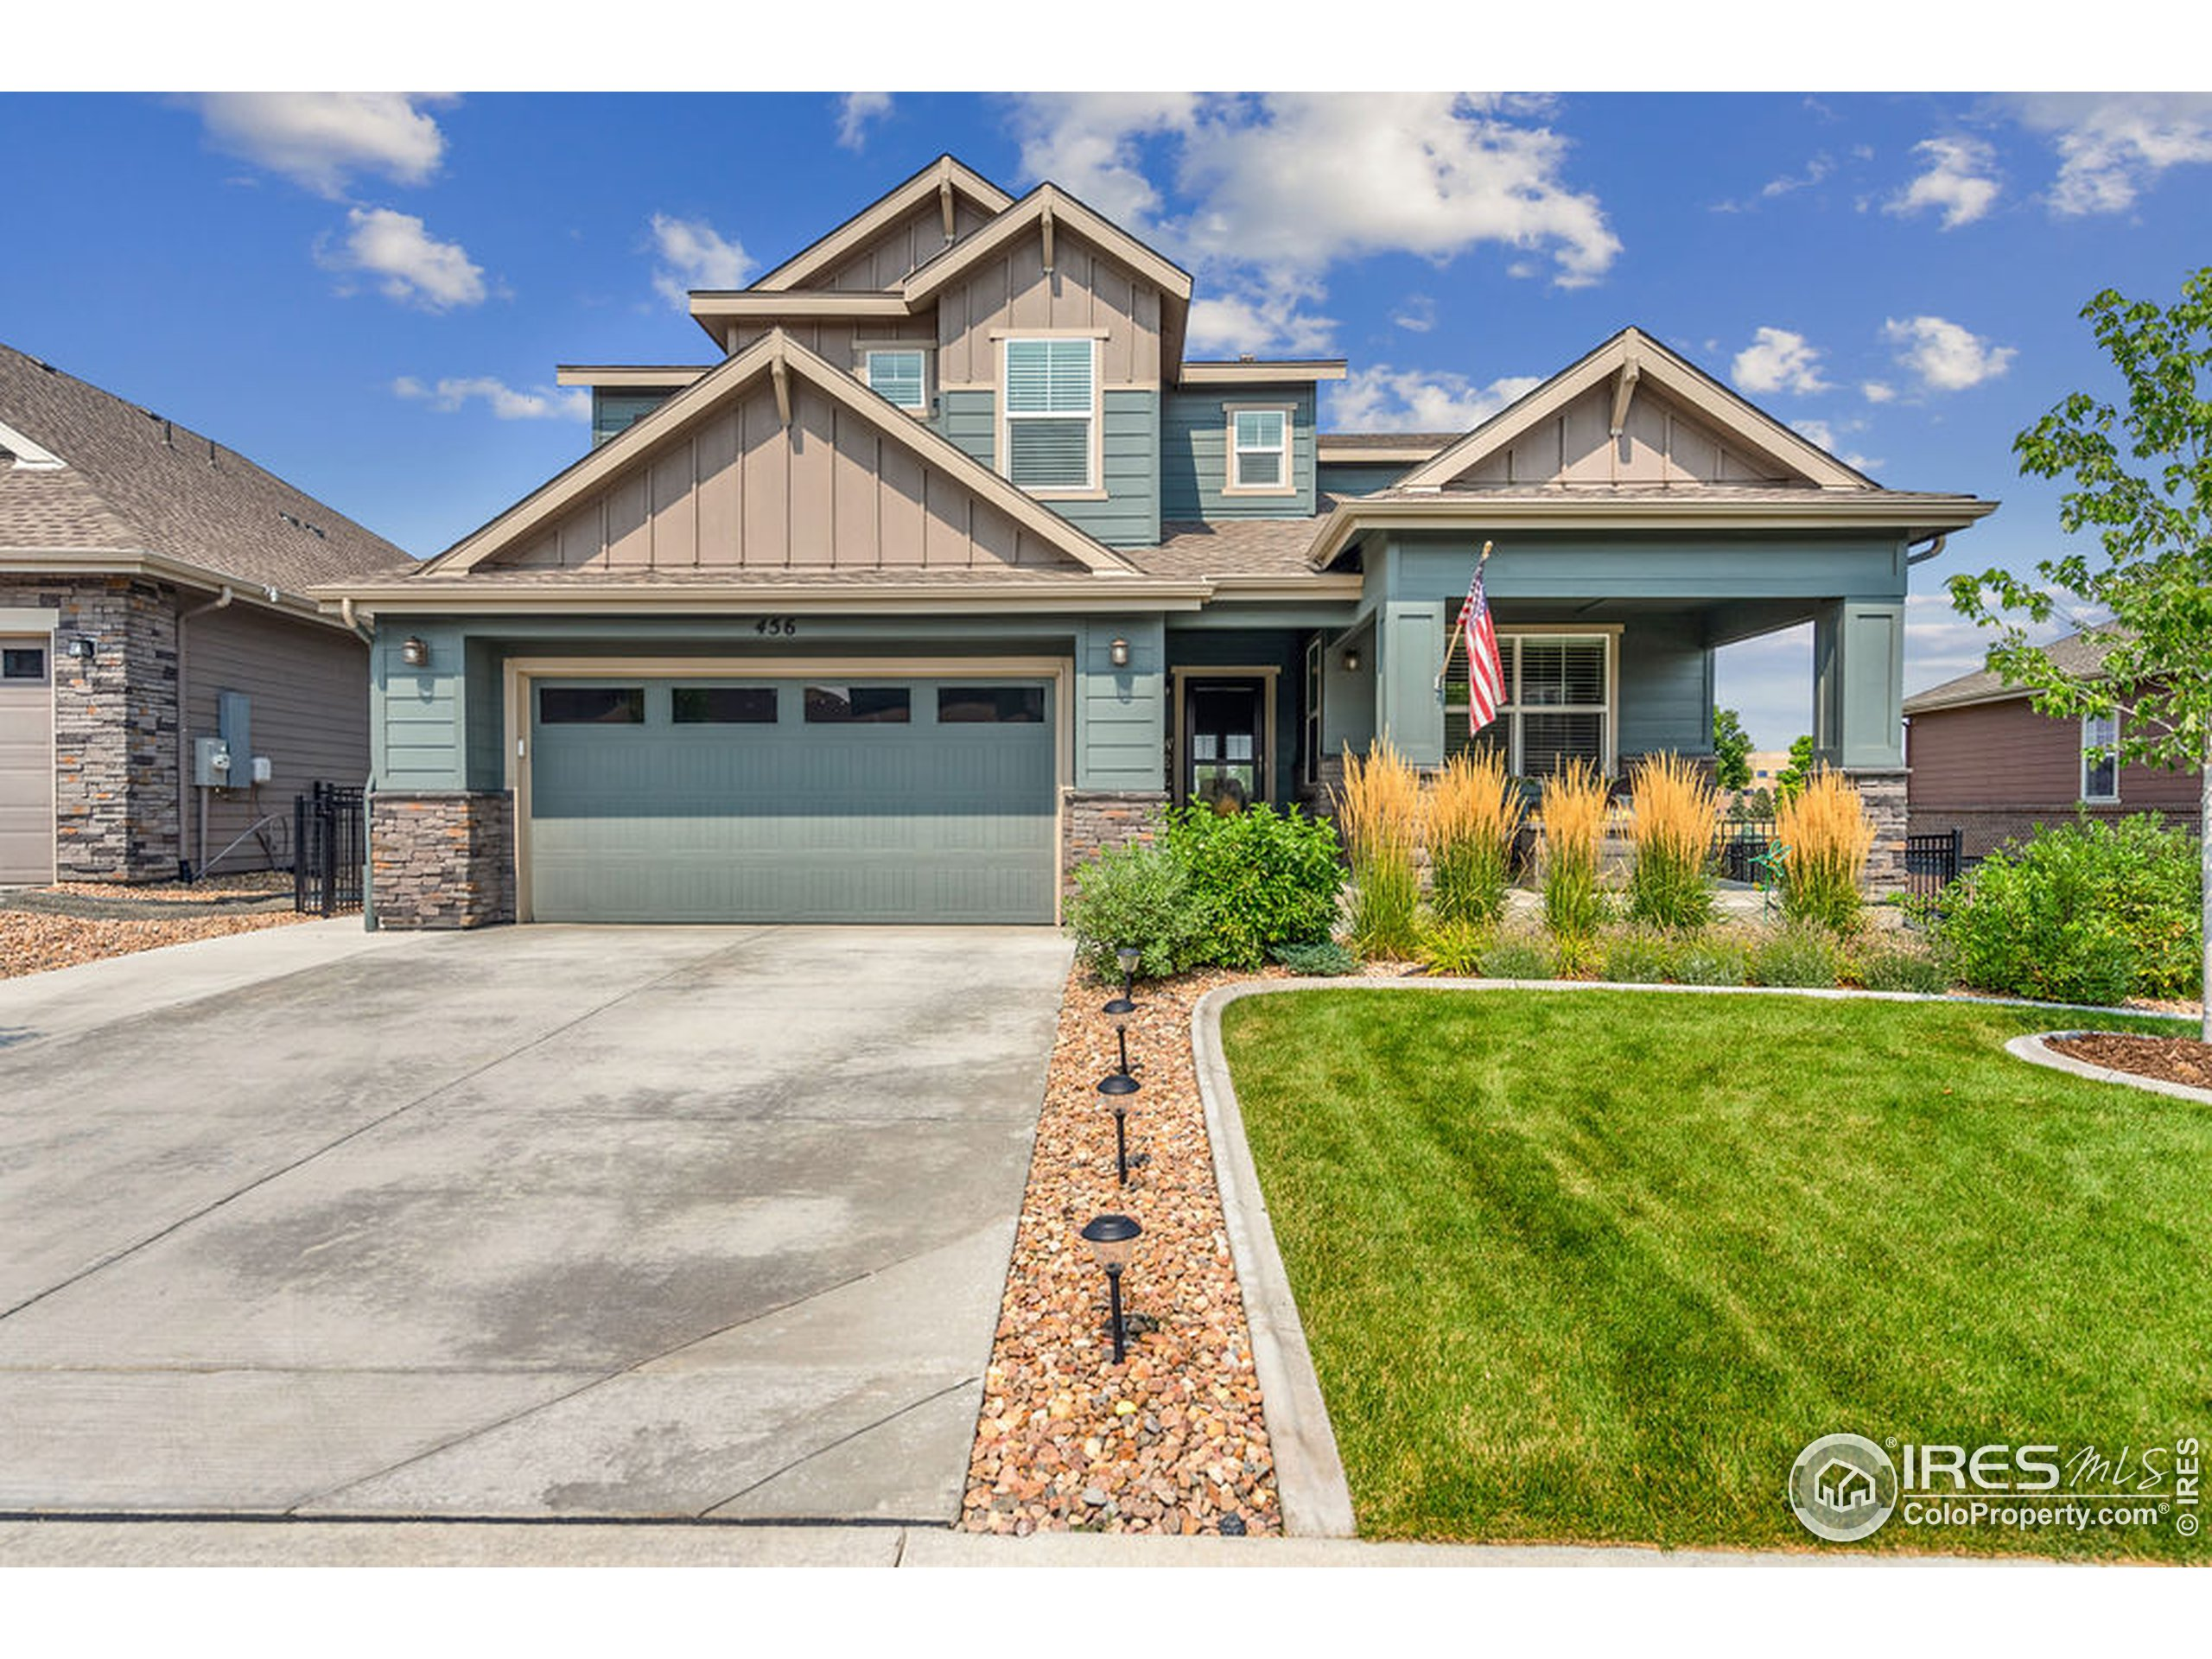 Welcome to Water Valley South! Now is THE opportunity to be a part of this great community and enjoy golfing, tennis, trails, lakes, and so much more. Beautiful 2-story home built in 2019 - 4 bdrm, 3 baths, loft area. Open kitchen, dining and living room. Entertain your guests right from your kitchen island or finish your dream basement. Enjoy the privacy of the large back patio with lake views just across the street. 3 car tandem garage is perfect for storage and toys. Limitless Possibilities!